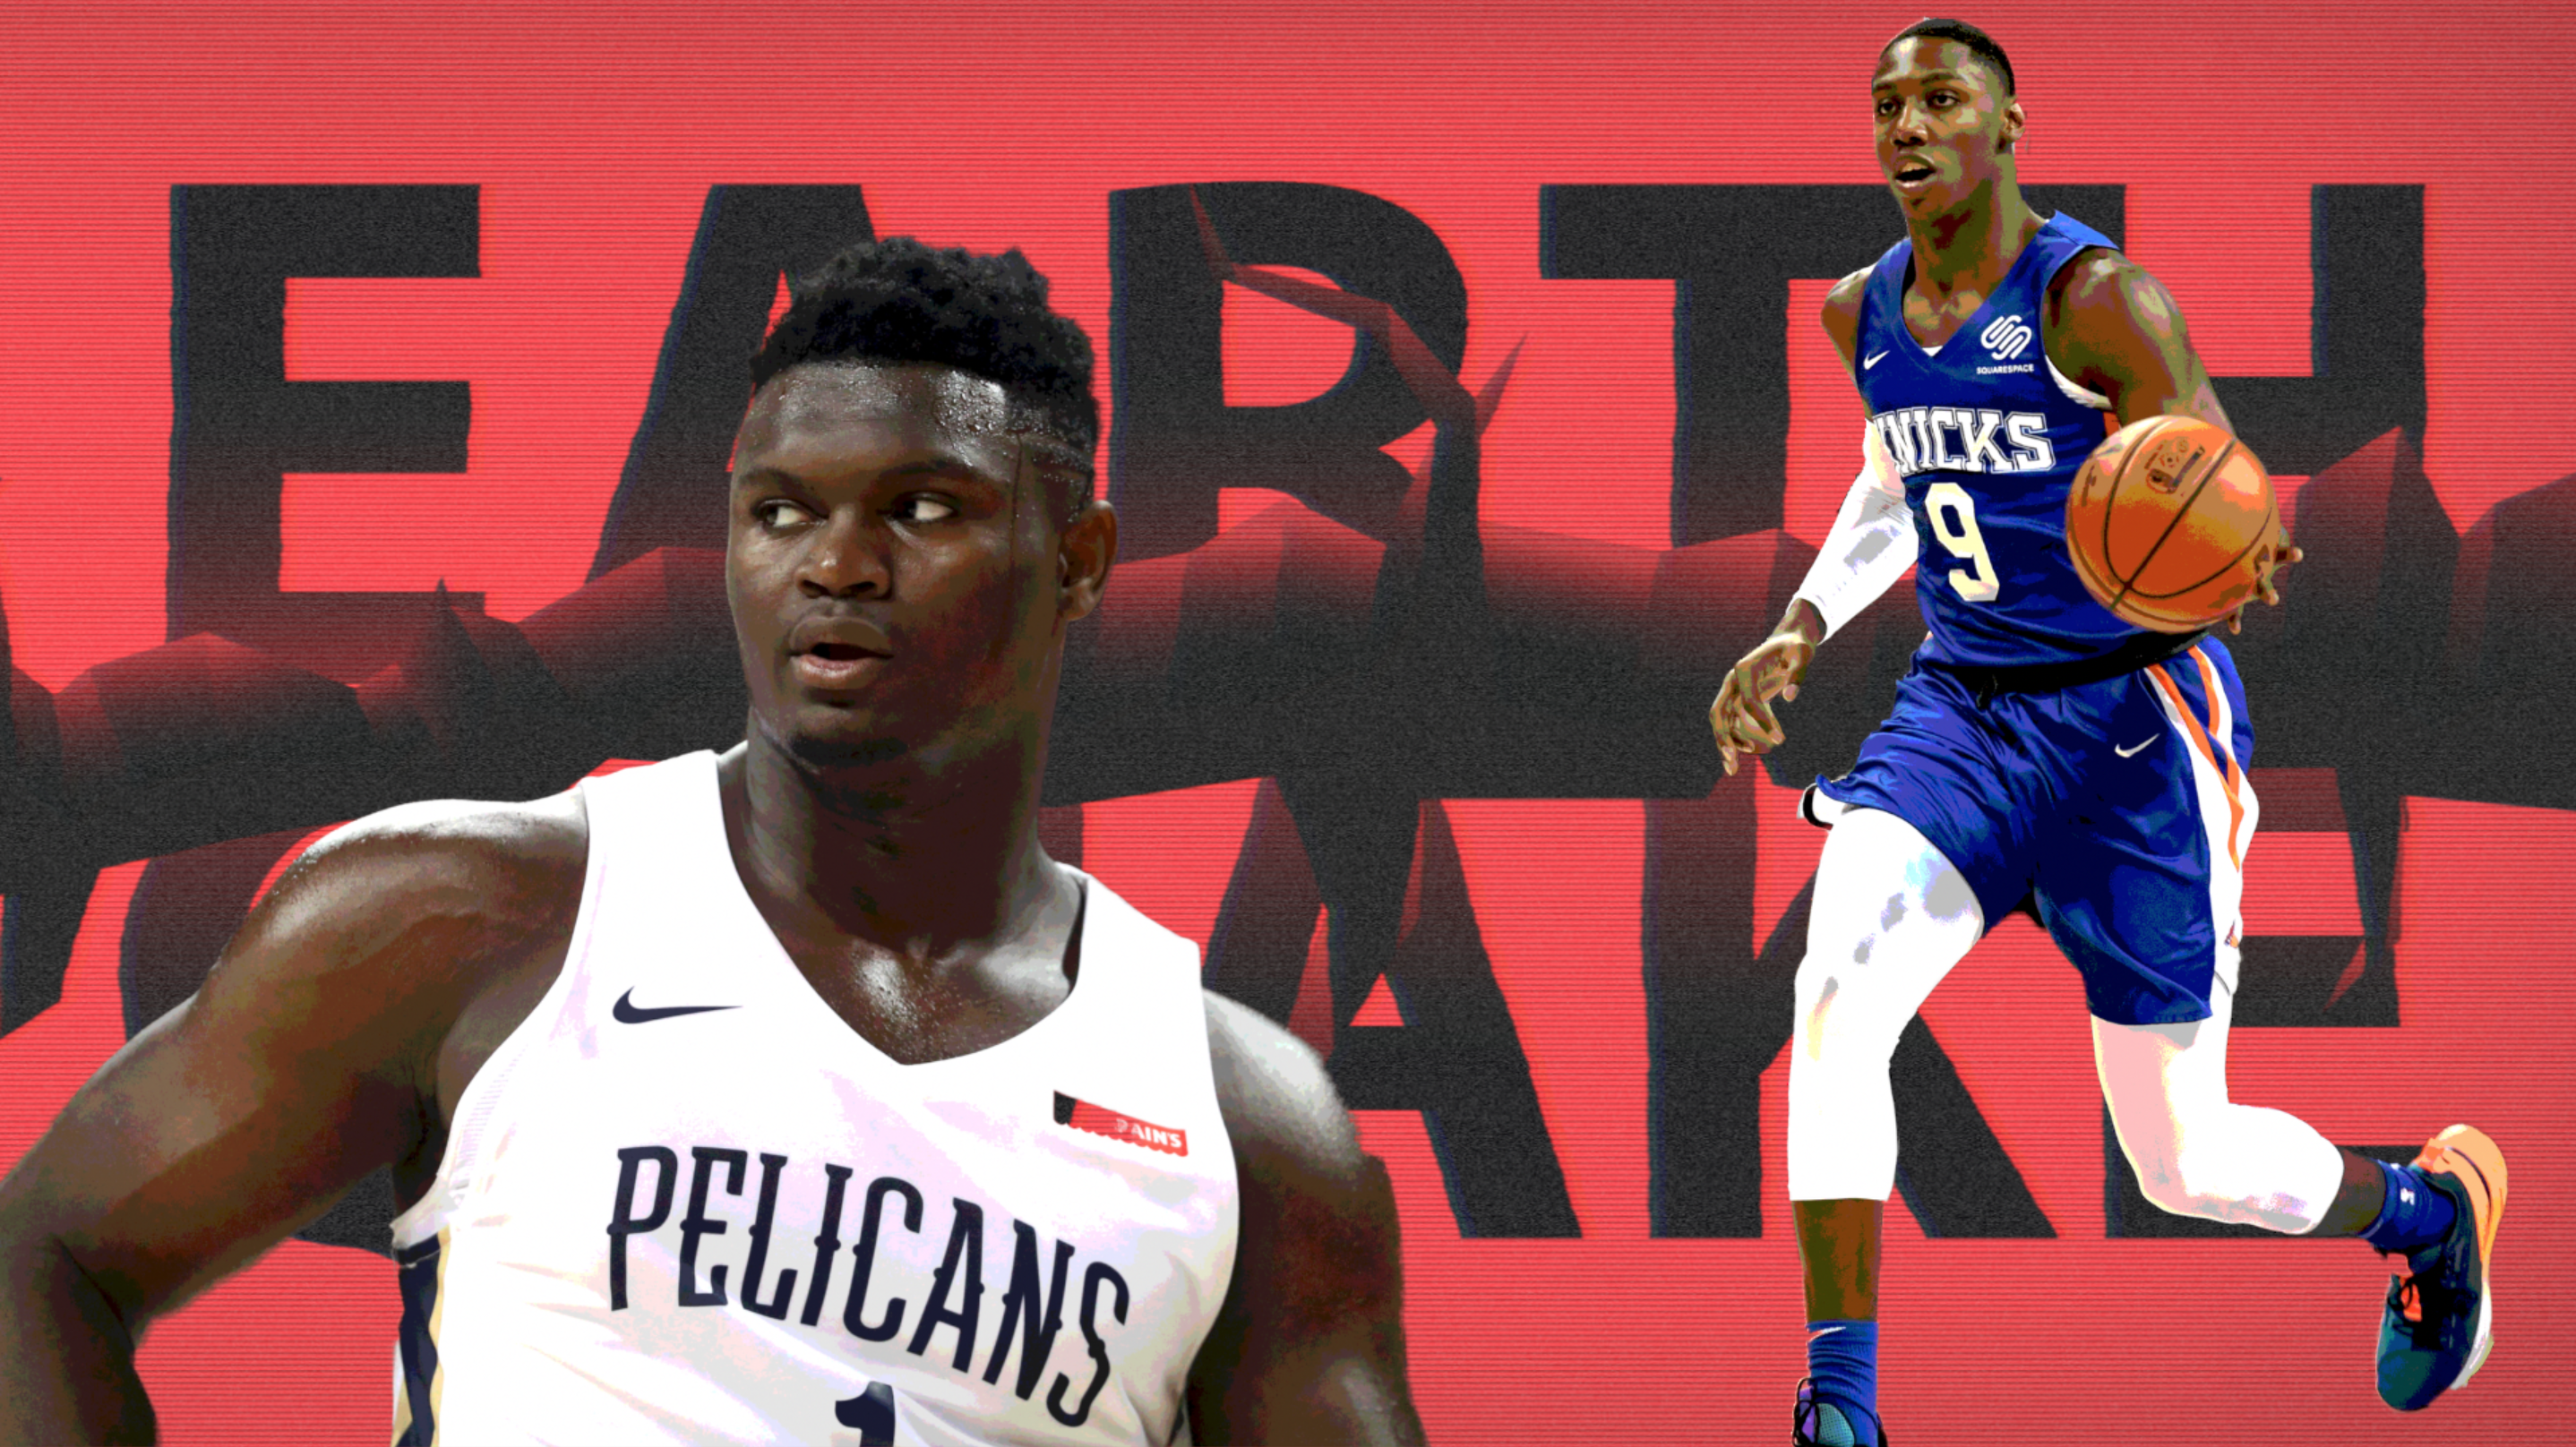 Earthquakes, highlights and lowlights defined Zion's summer league debut